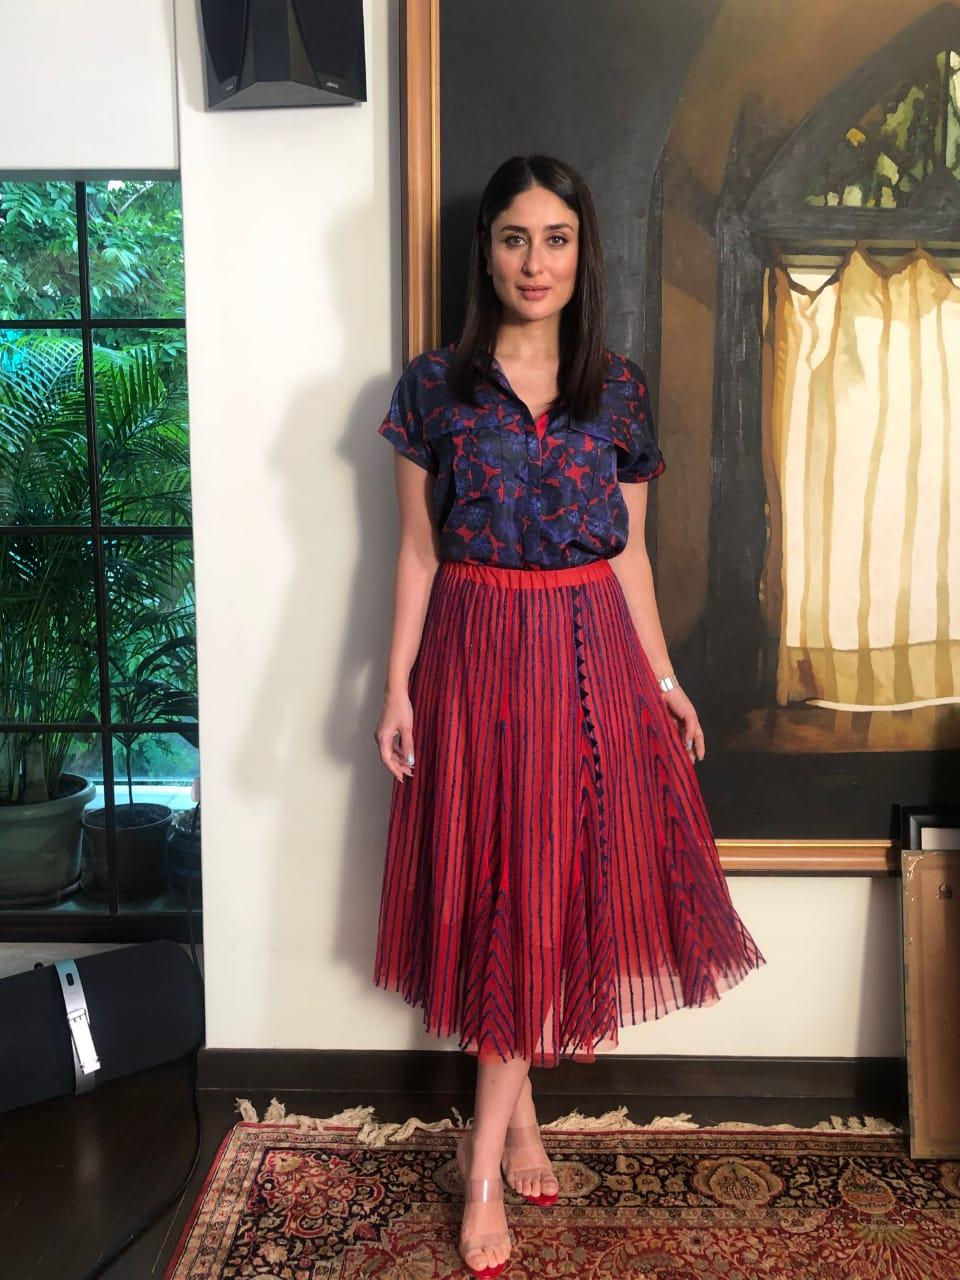 kareena-kapoor-khan-in-skirt-with-floral-printed-shirt